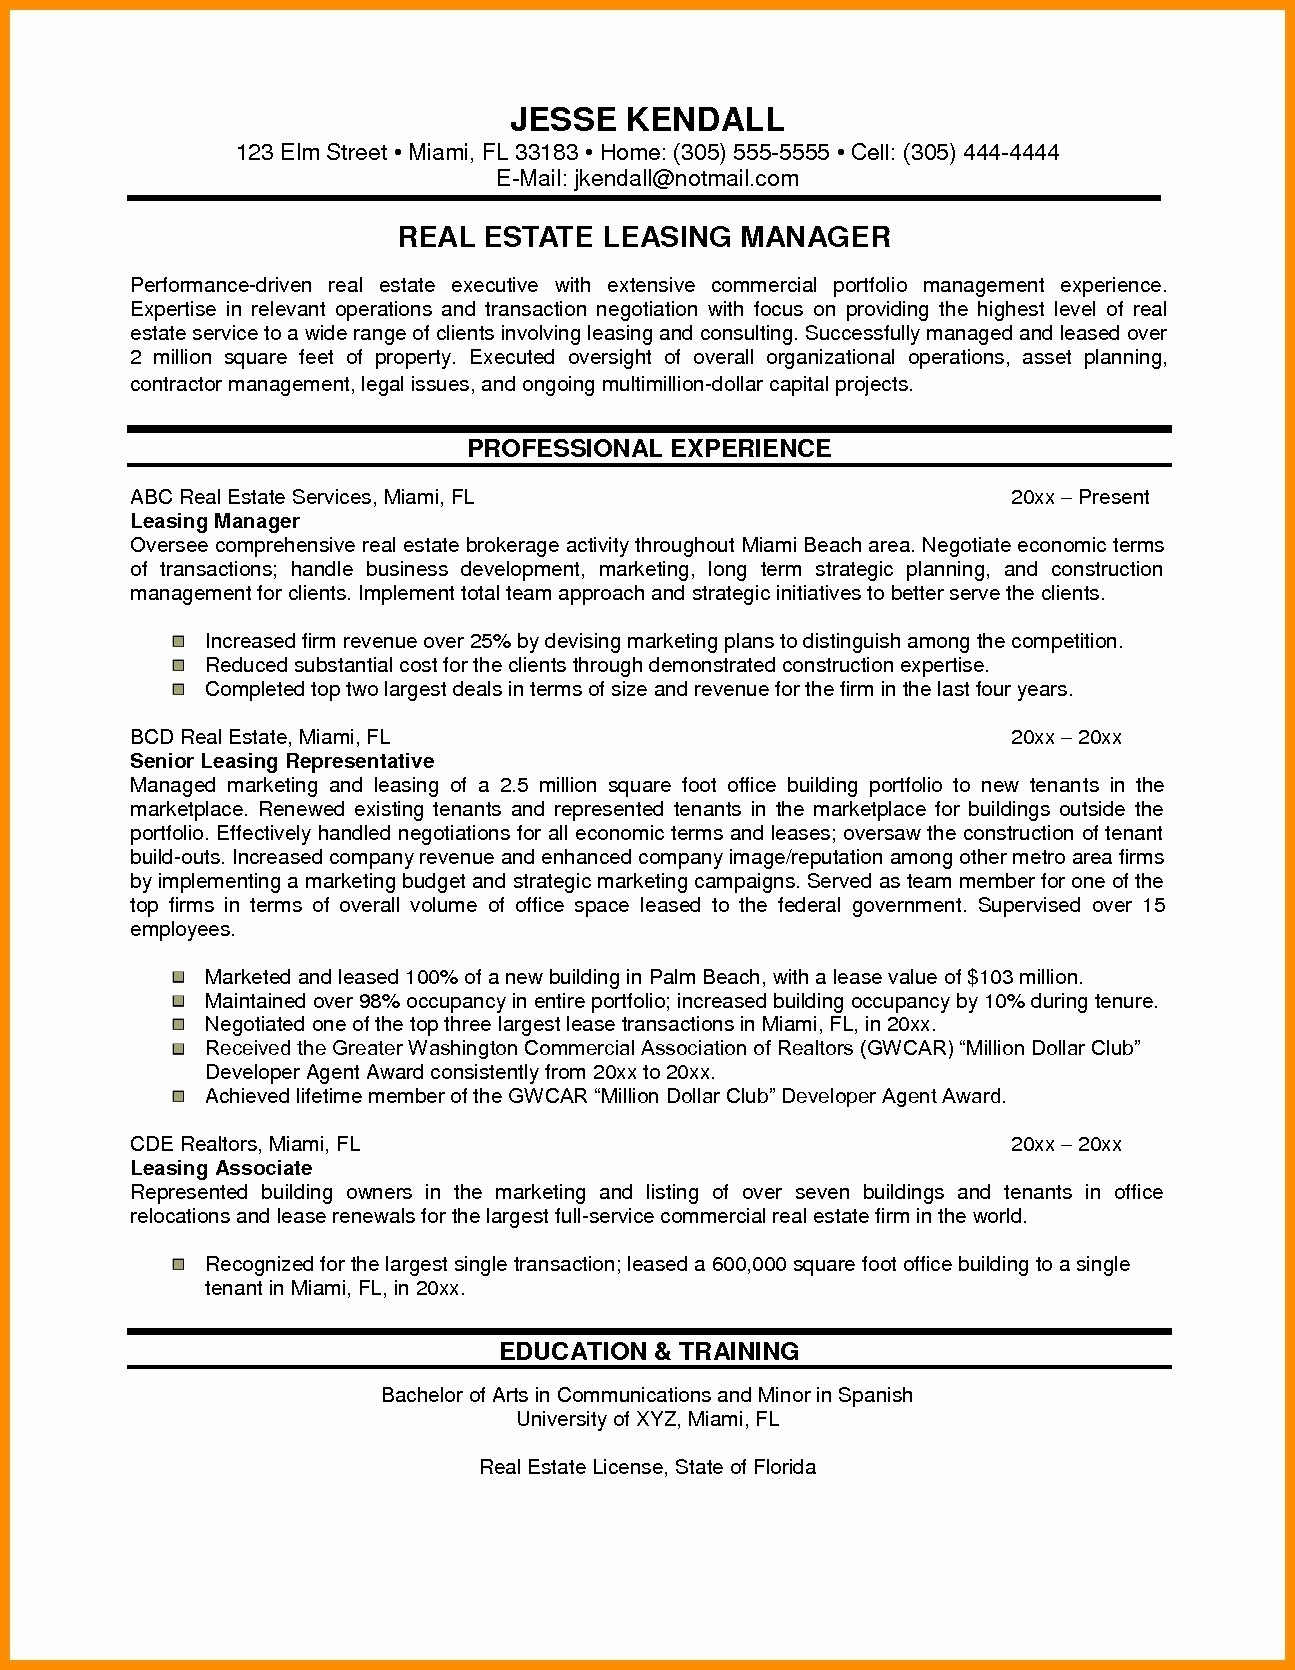 Property Management Resume Template - Resume for Sales Executive In Real Estate Resume Resume Examples